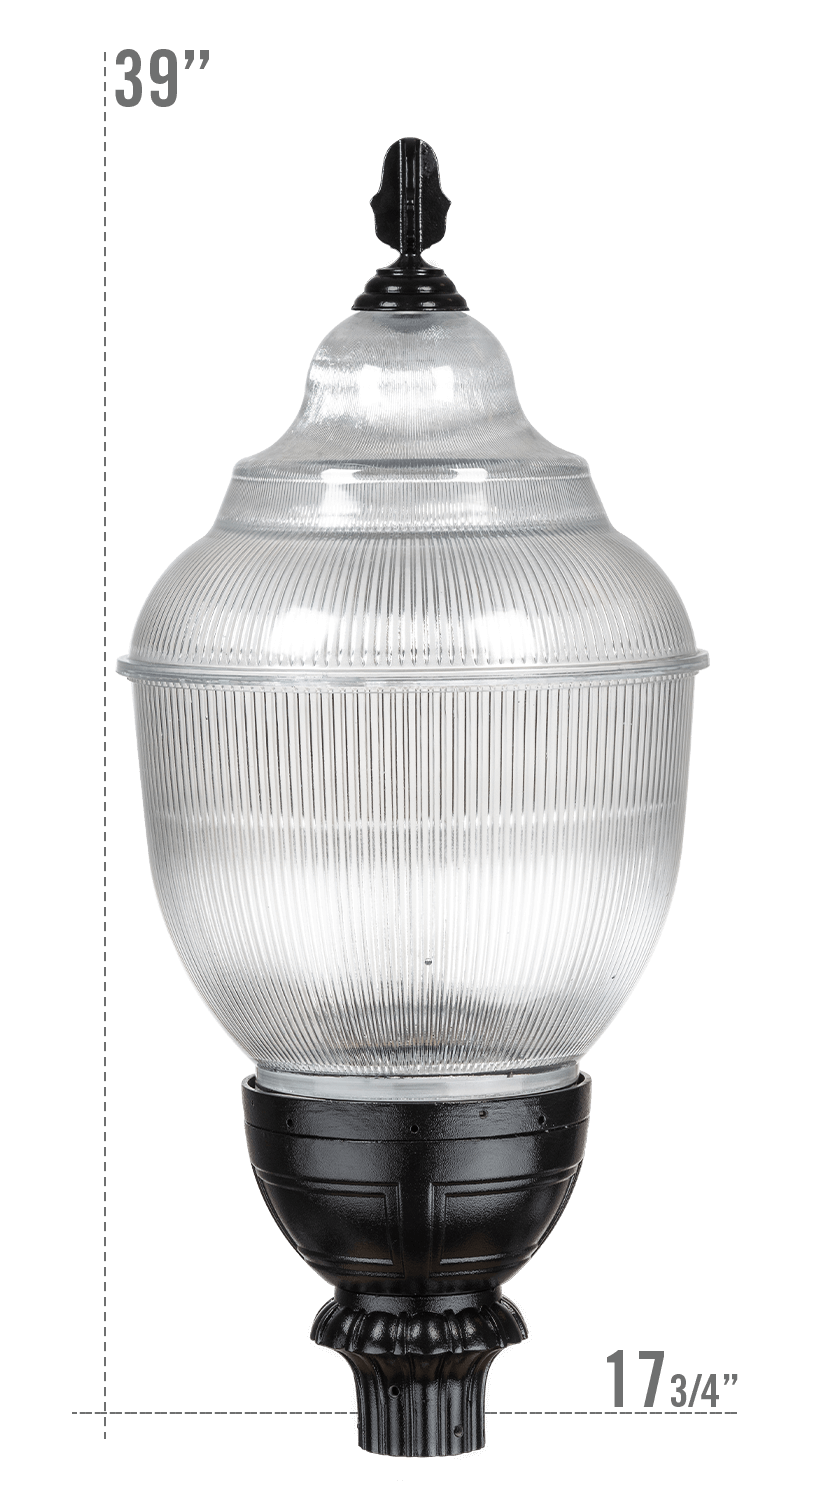 THE GETTYSBURG X-SERIES LED LUMINAIRE G637 GLOBE